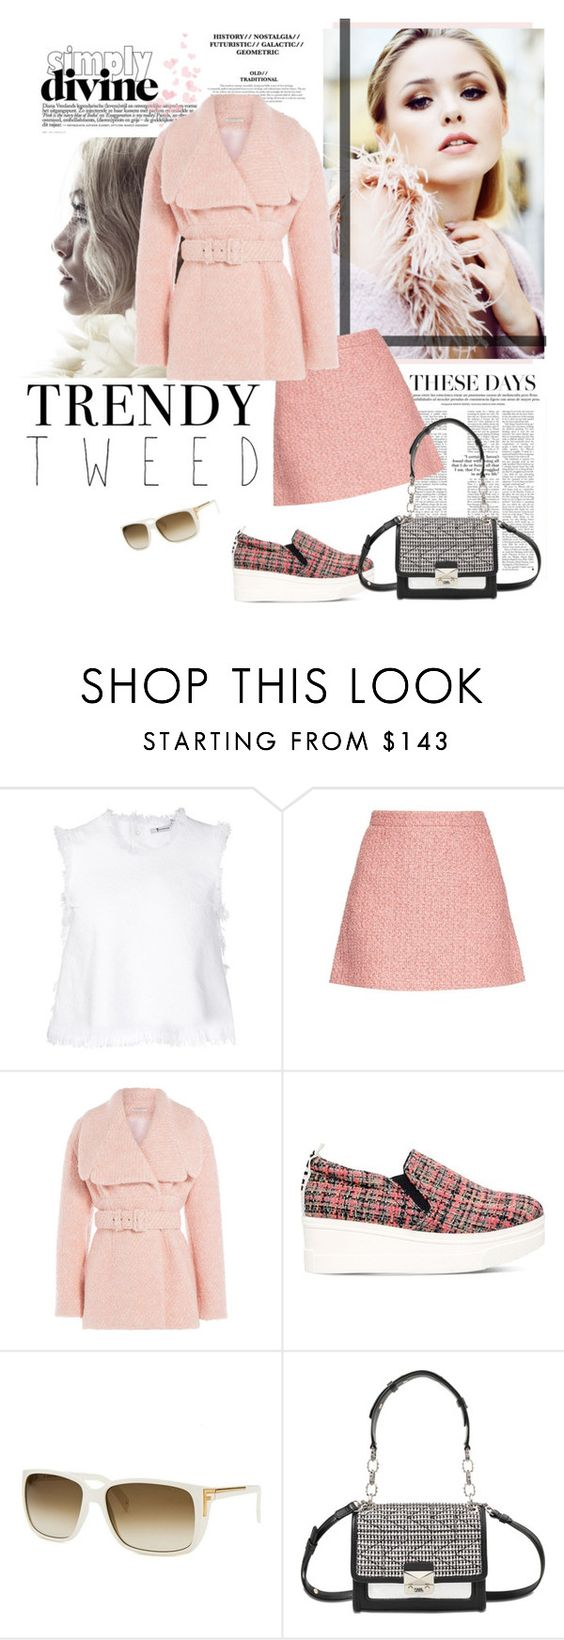 """Trendy Tweed"" by bjigg ❤ liked on Polyvore featuring T By Alexander Wang, Gucci, Emilia Wickstead, KG Kurt Geiger, Fendi and Karl Lagerfeld"